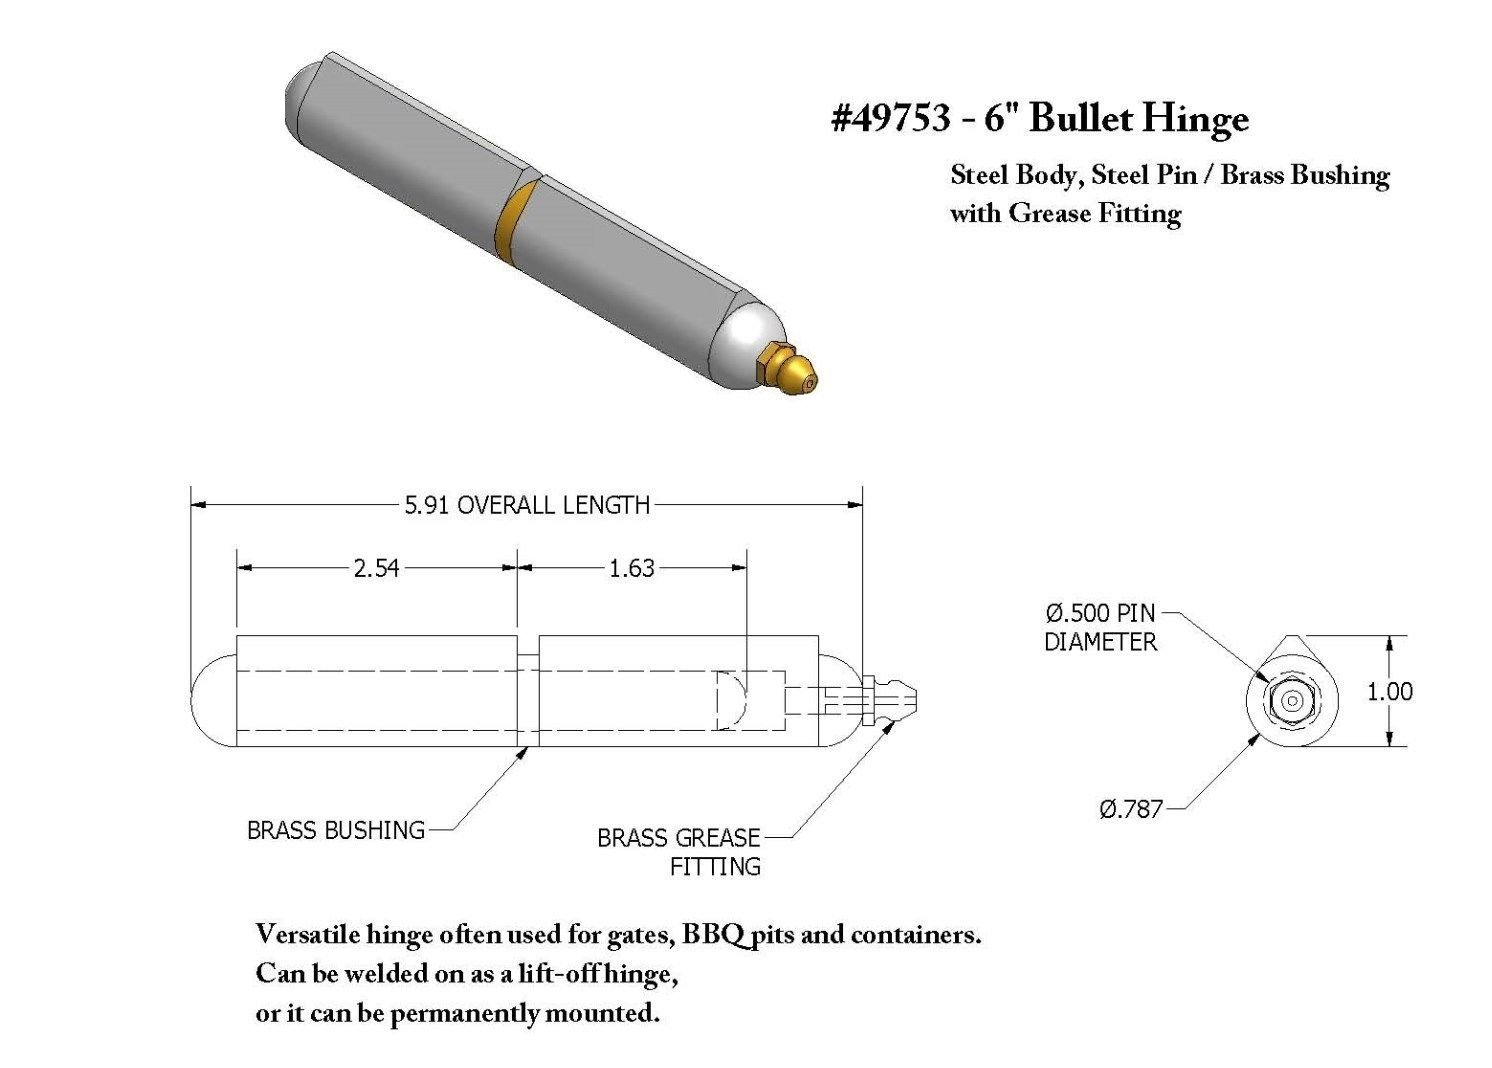 Combo Bullet Hinges 10 49753 48236 4 49754 Explosive Welding Diagram 47088 47089 Kitchen Dining